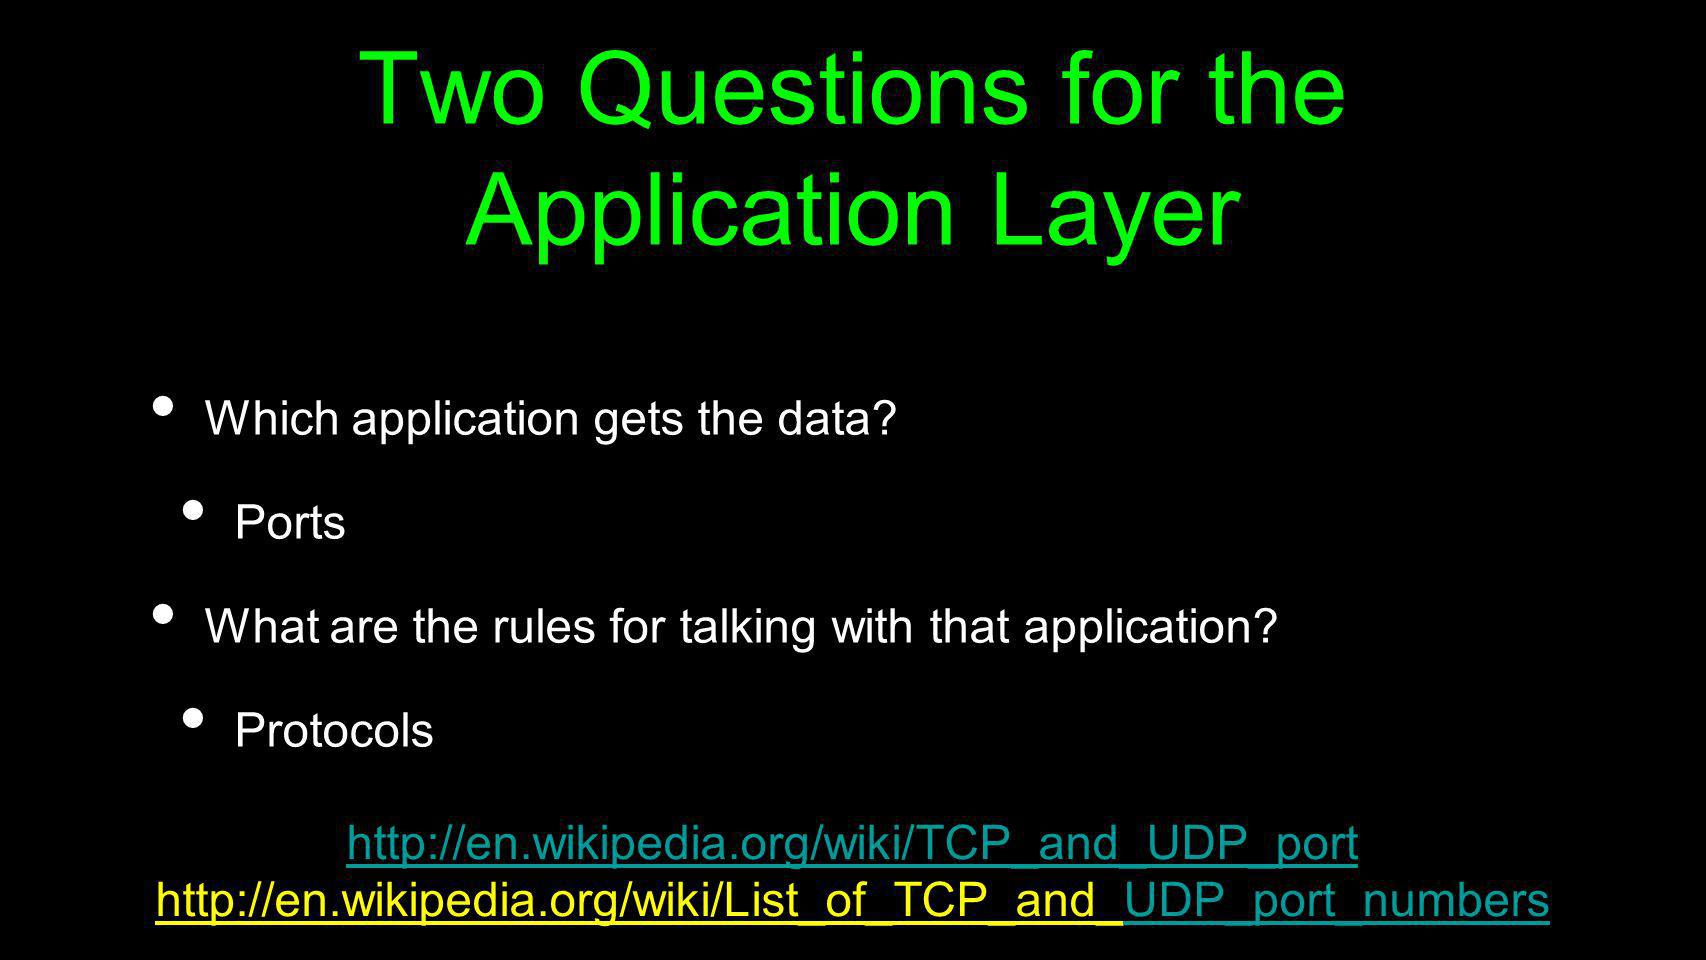 Two Questions for the Application Layer